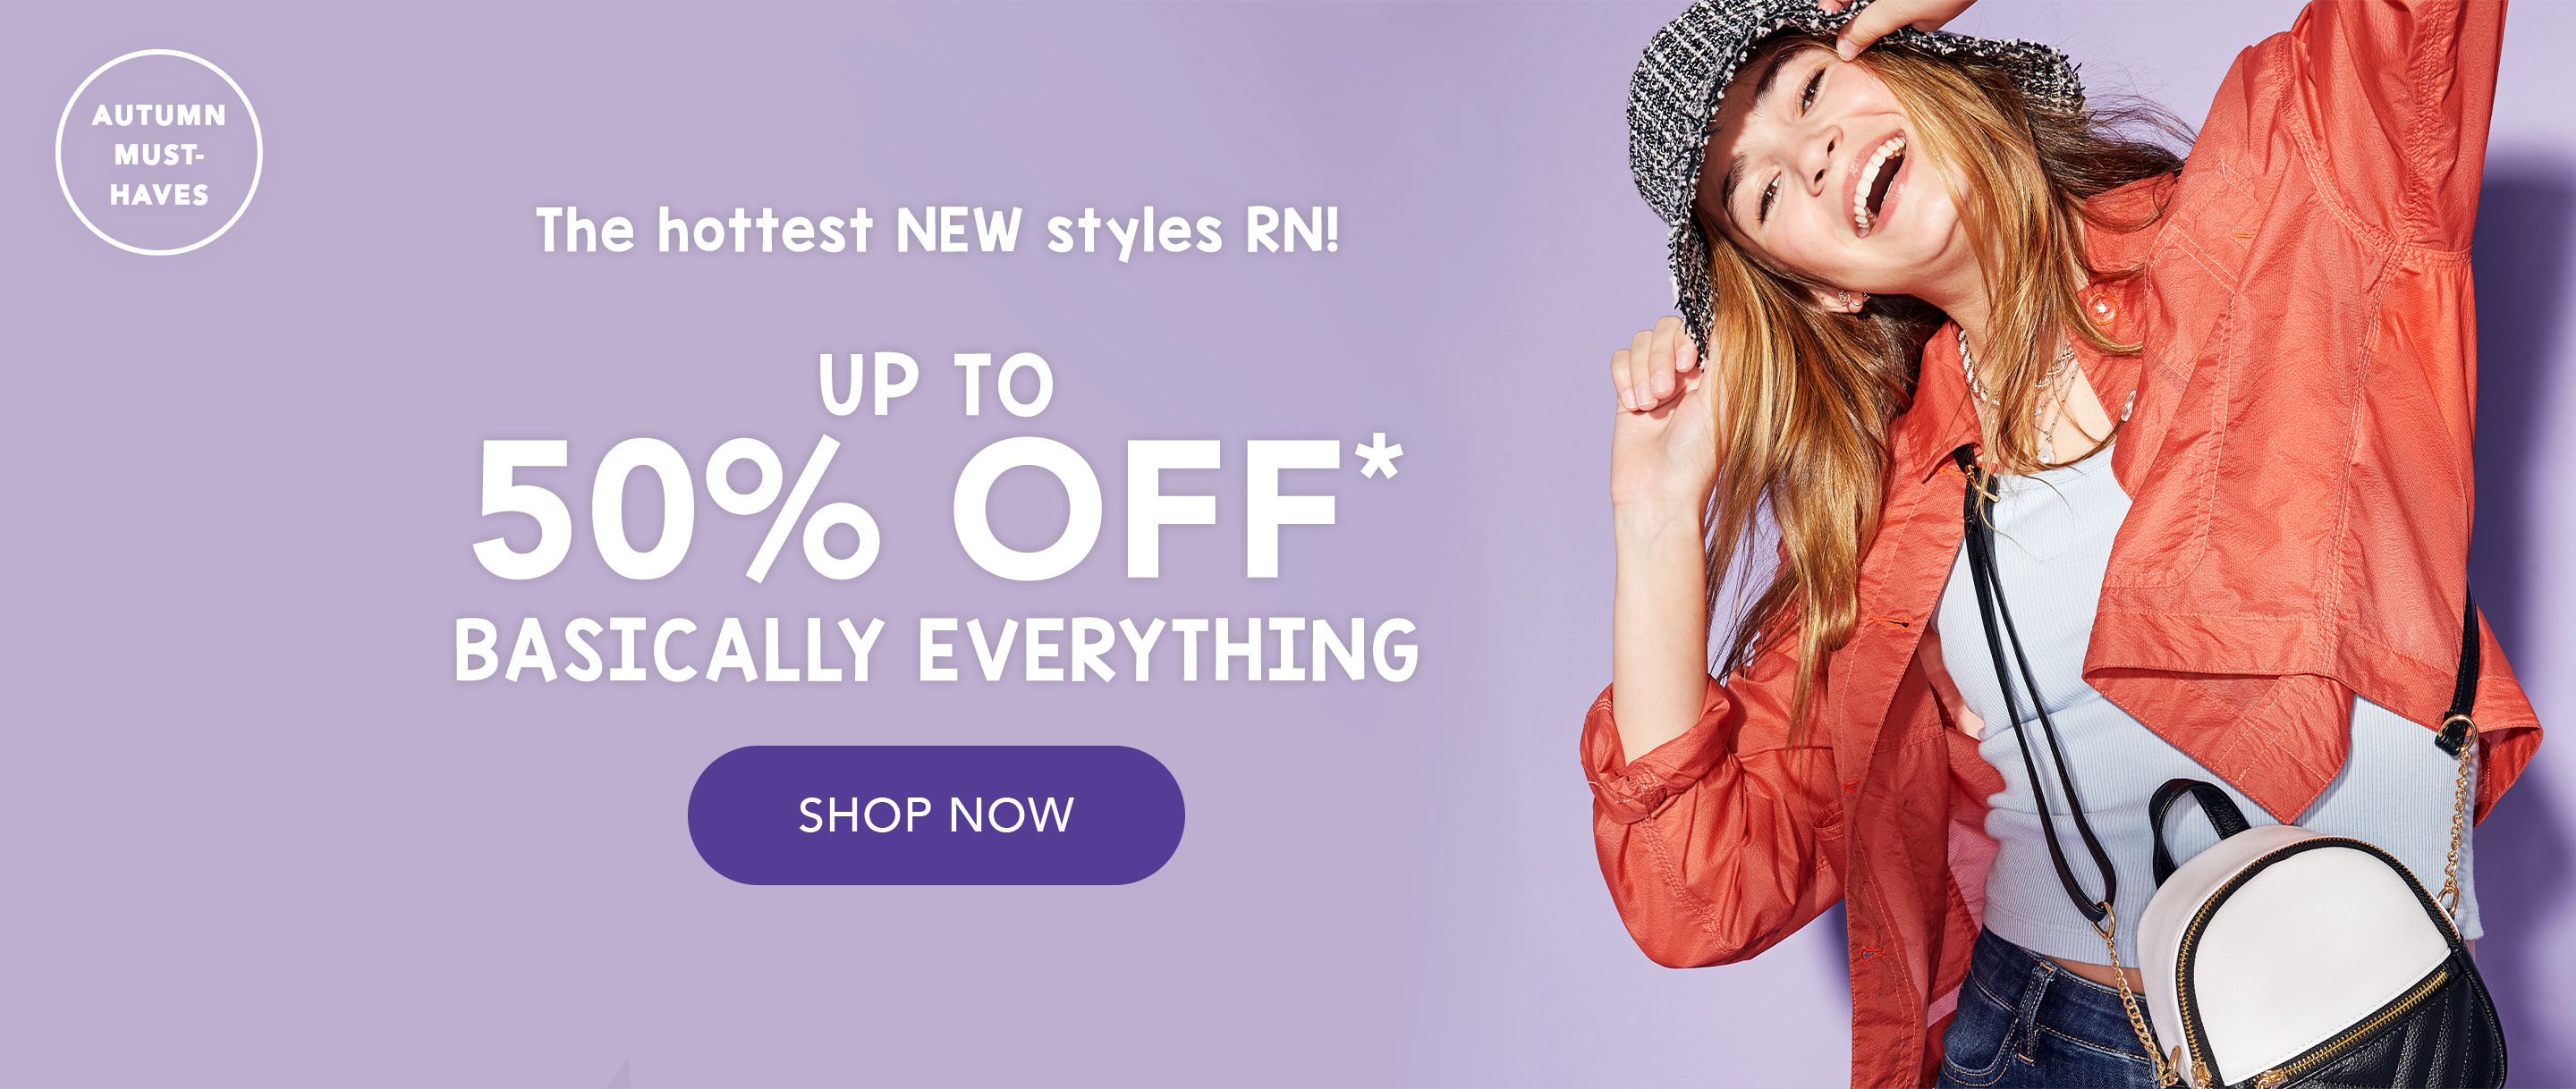 Autumn must-haves: the hottest new styles RN! Up to 50% off basically everythingyou want!